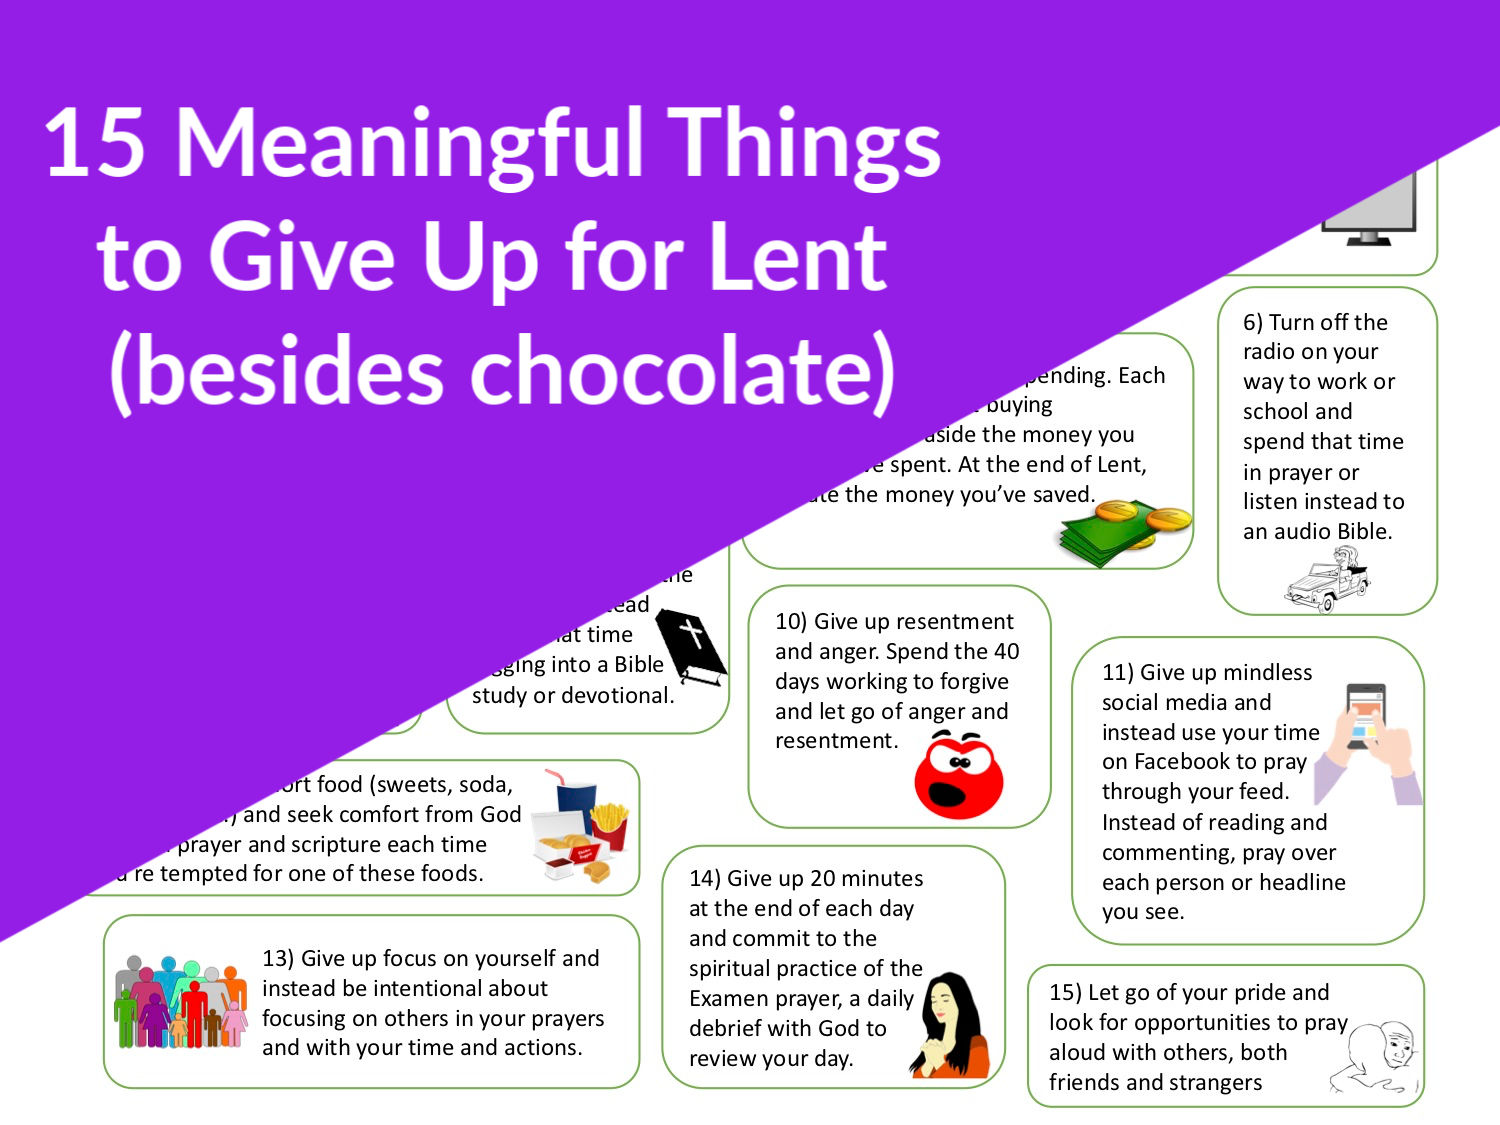 free idea sheet for 15 meaningful things to give up for Lent